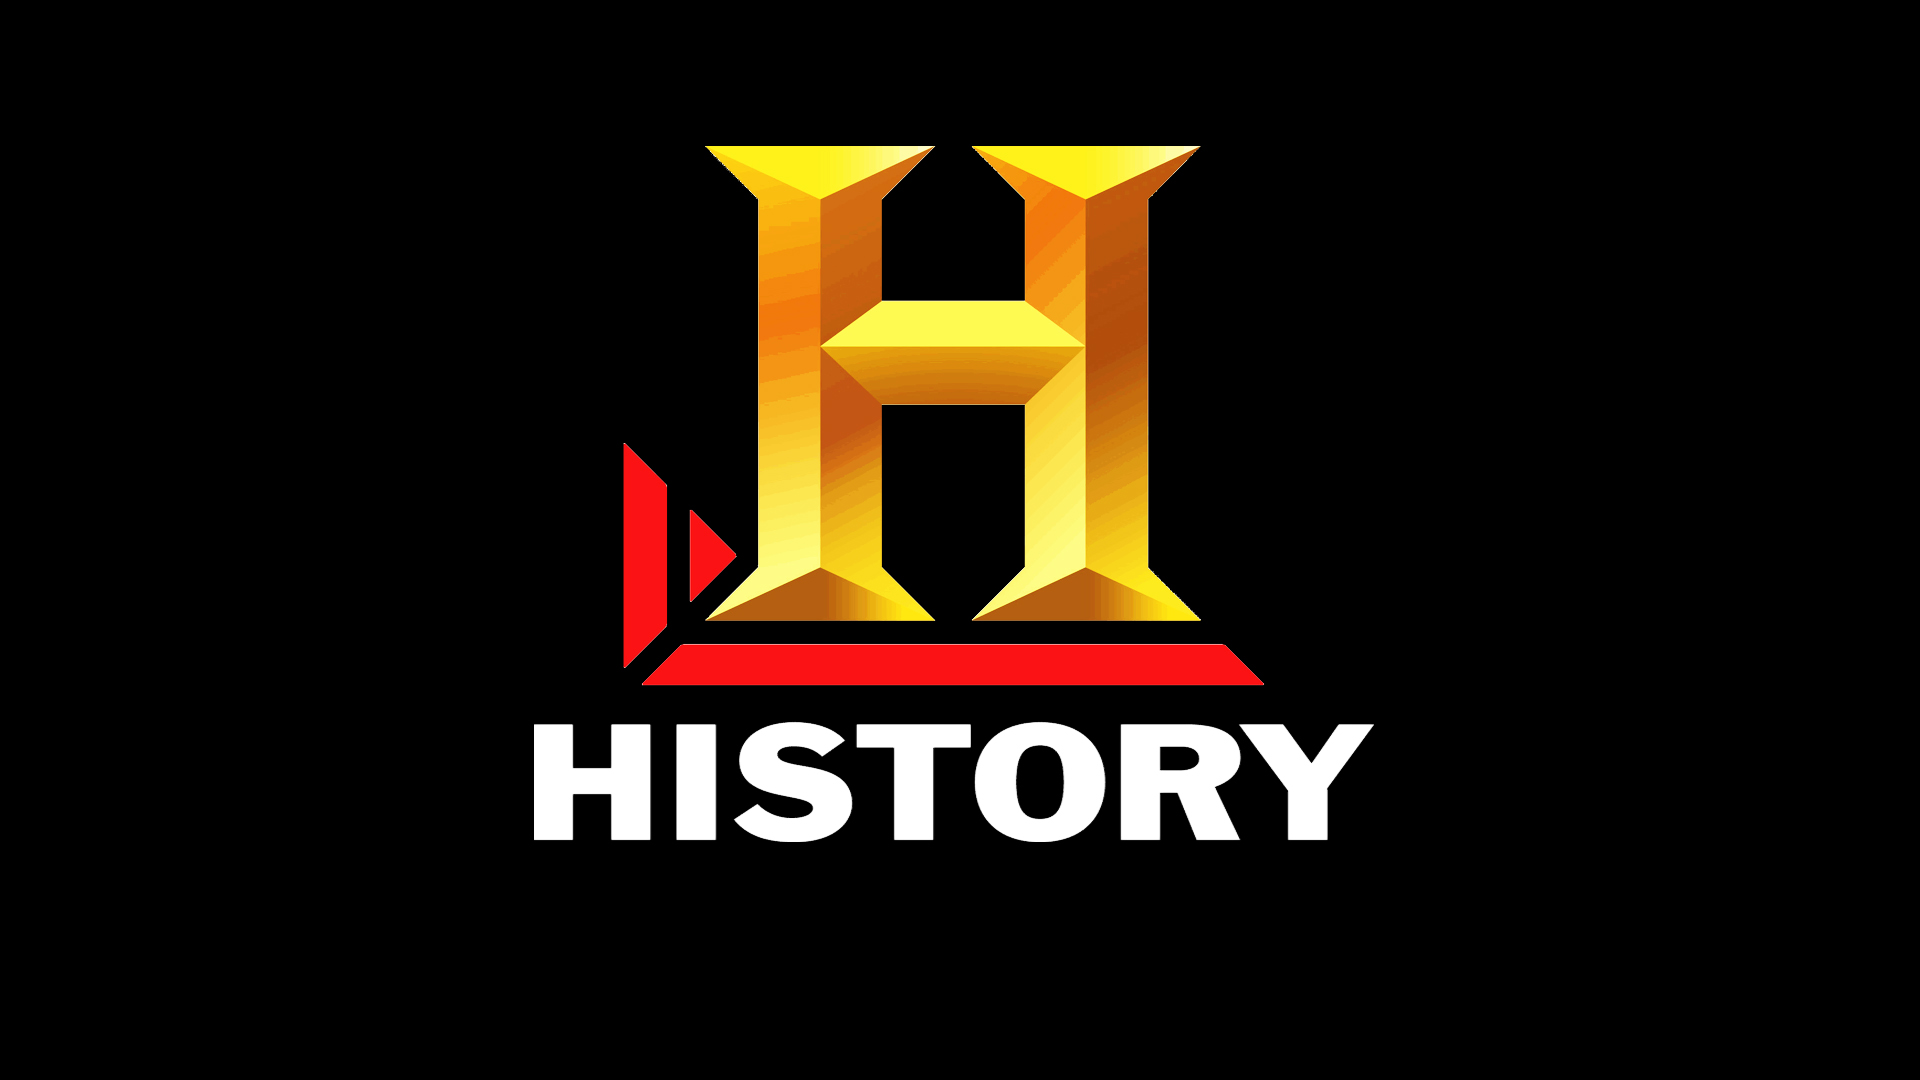 The History Channel Black logo wallpaper background 1920x1080